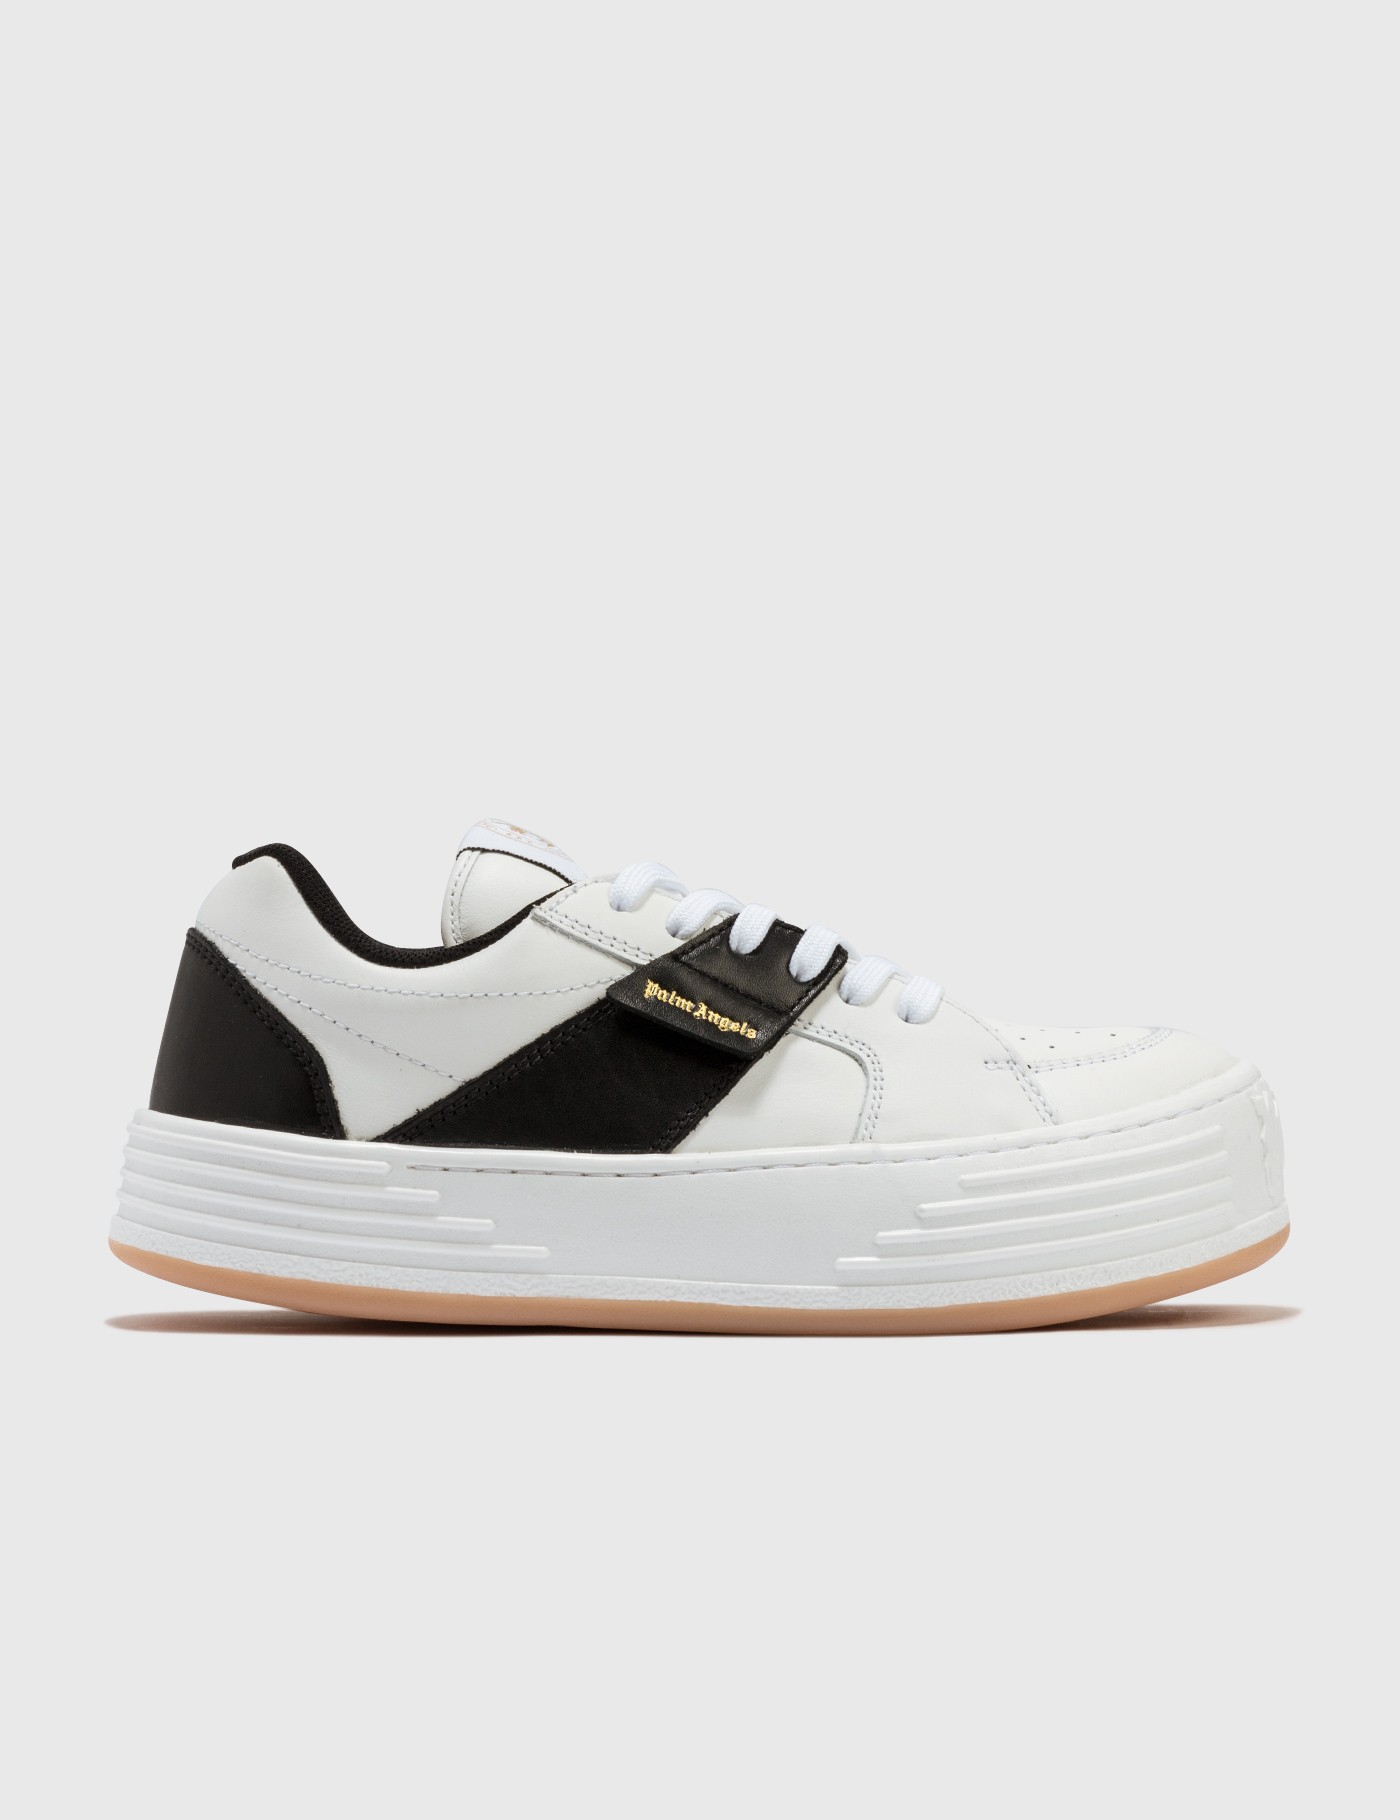 Palm Angels Leathers LEATHER SNOW LOW TOP SNEAKERS